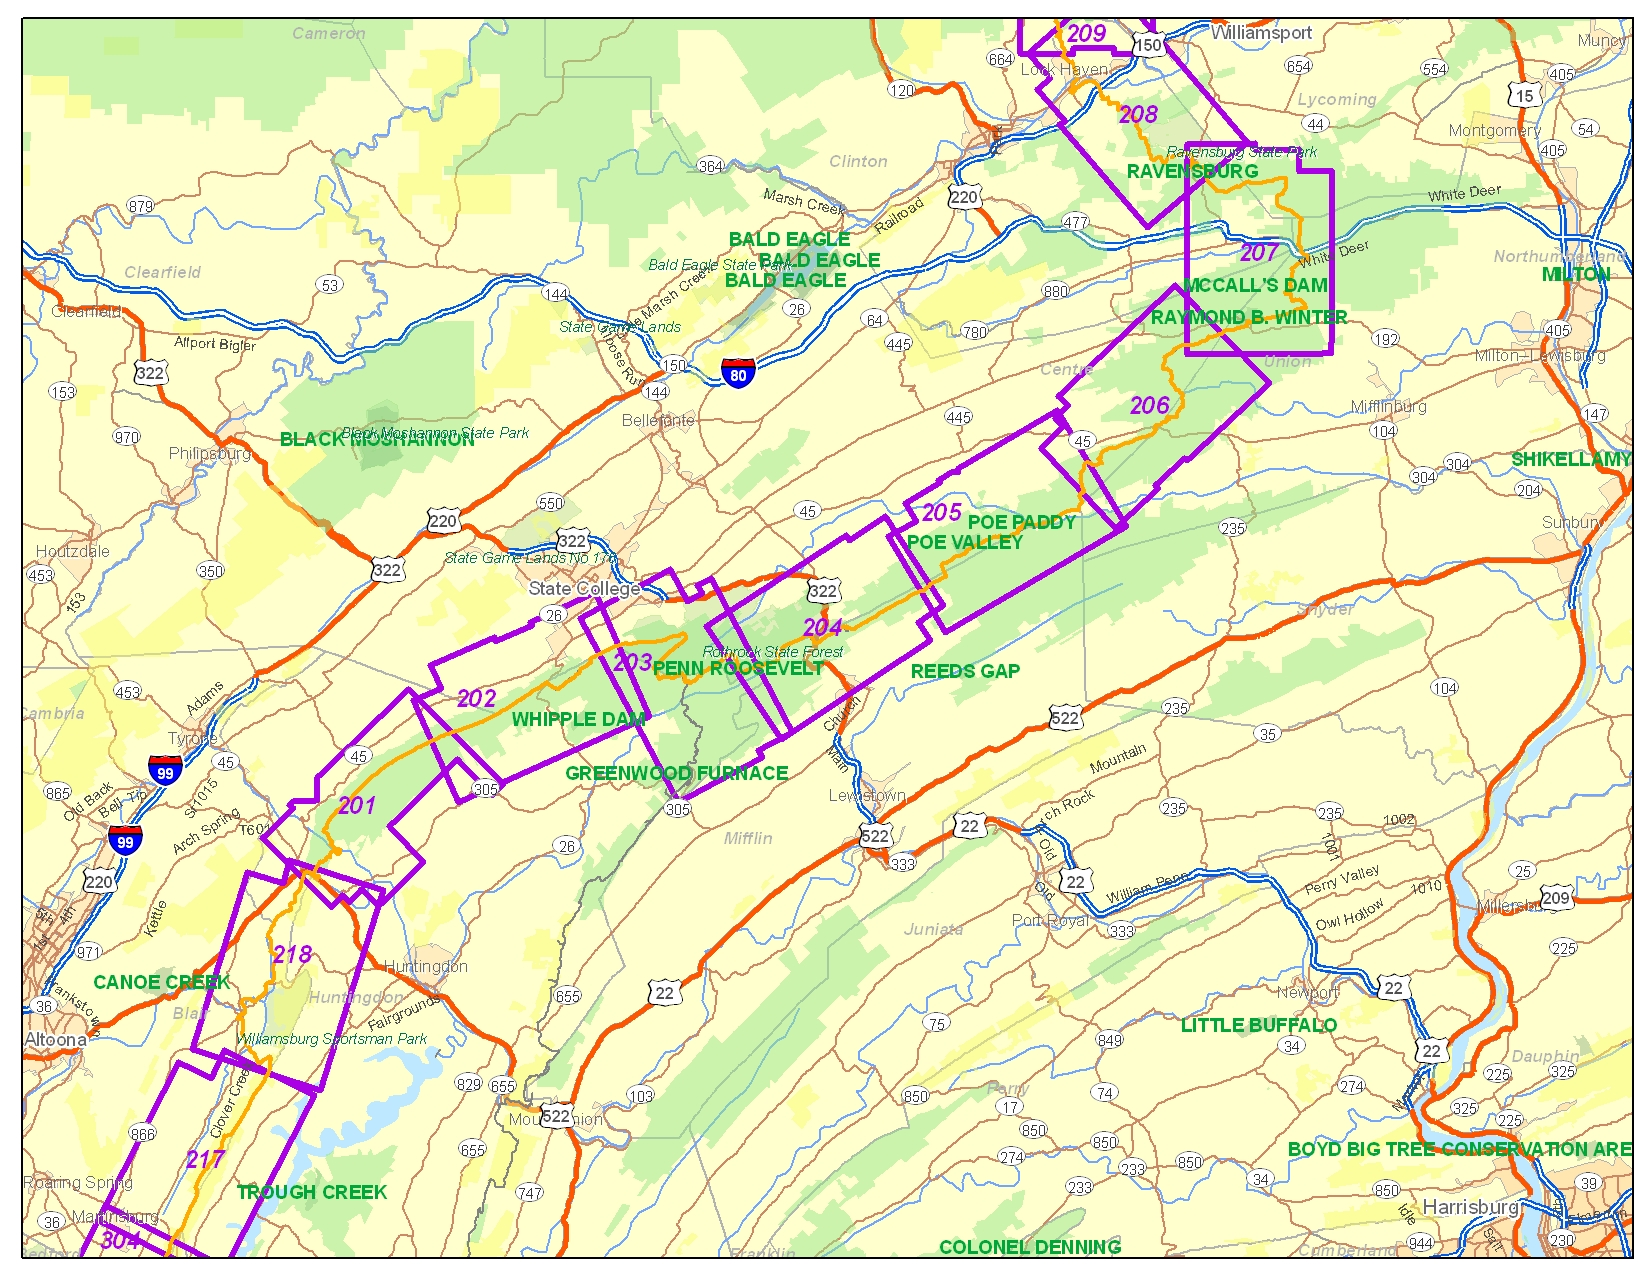 State College Region Maps Great Eastern Trail Mid State Trail - Penn map state maps